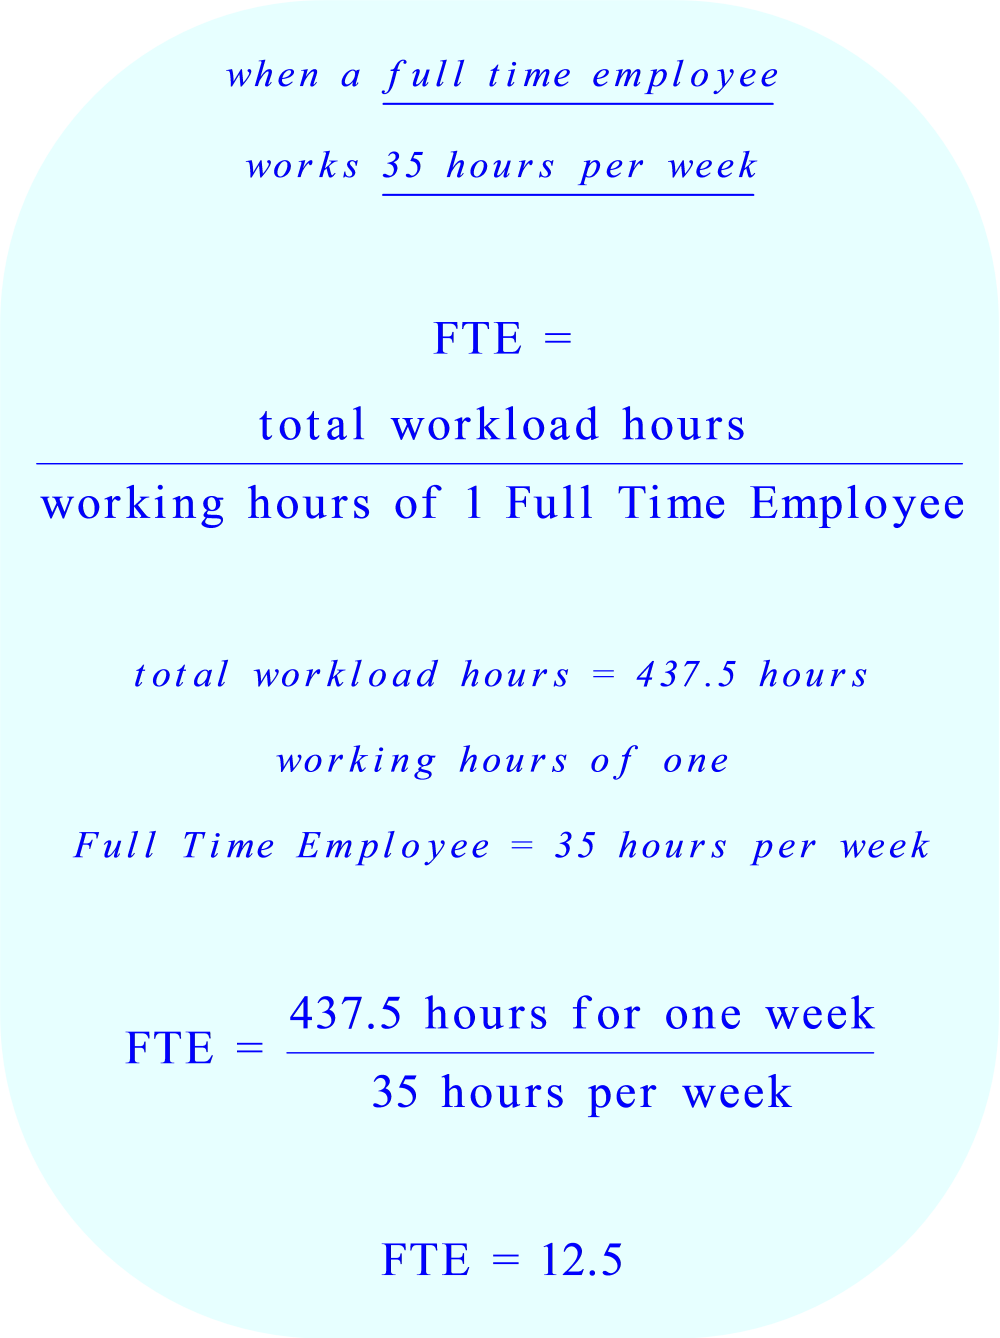 Calculation of FTE if  the definition of a full time employee is:  works 35 hours per week 